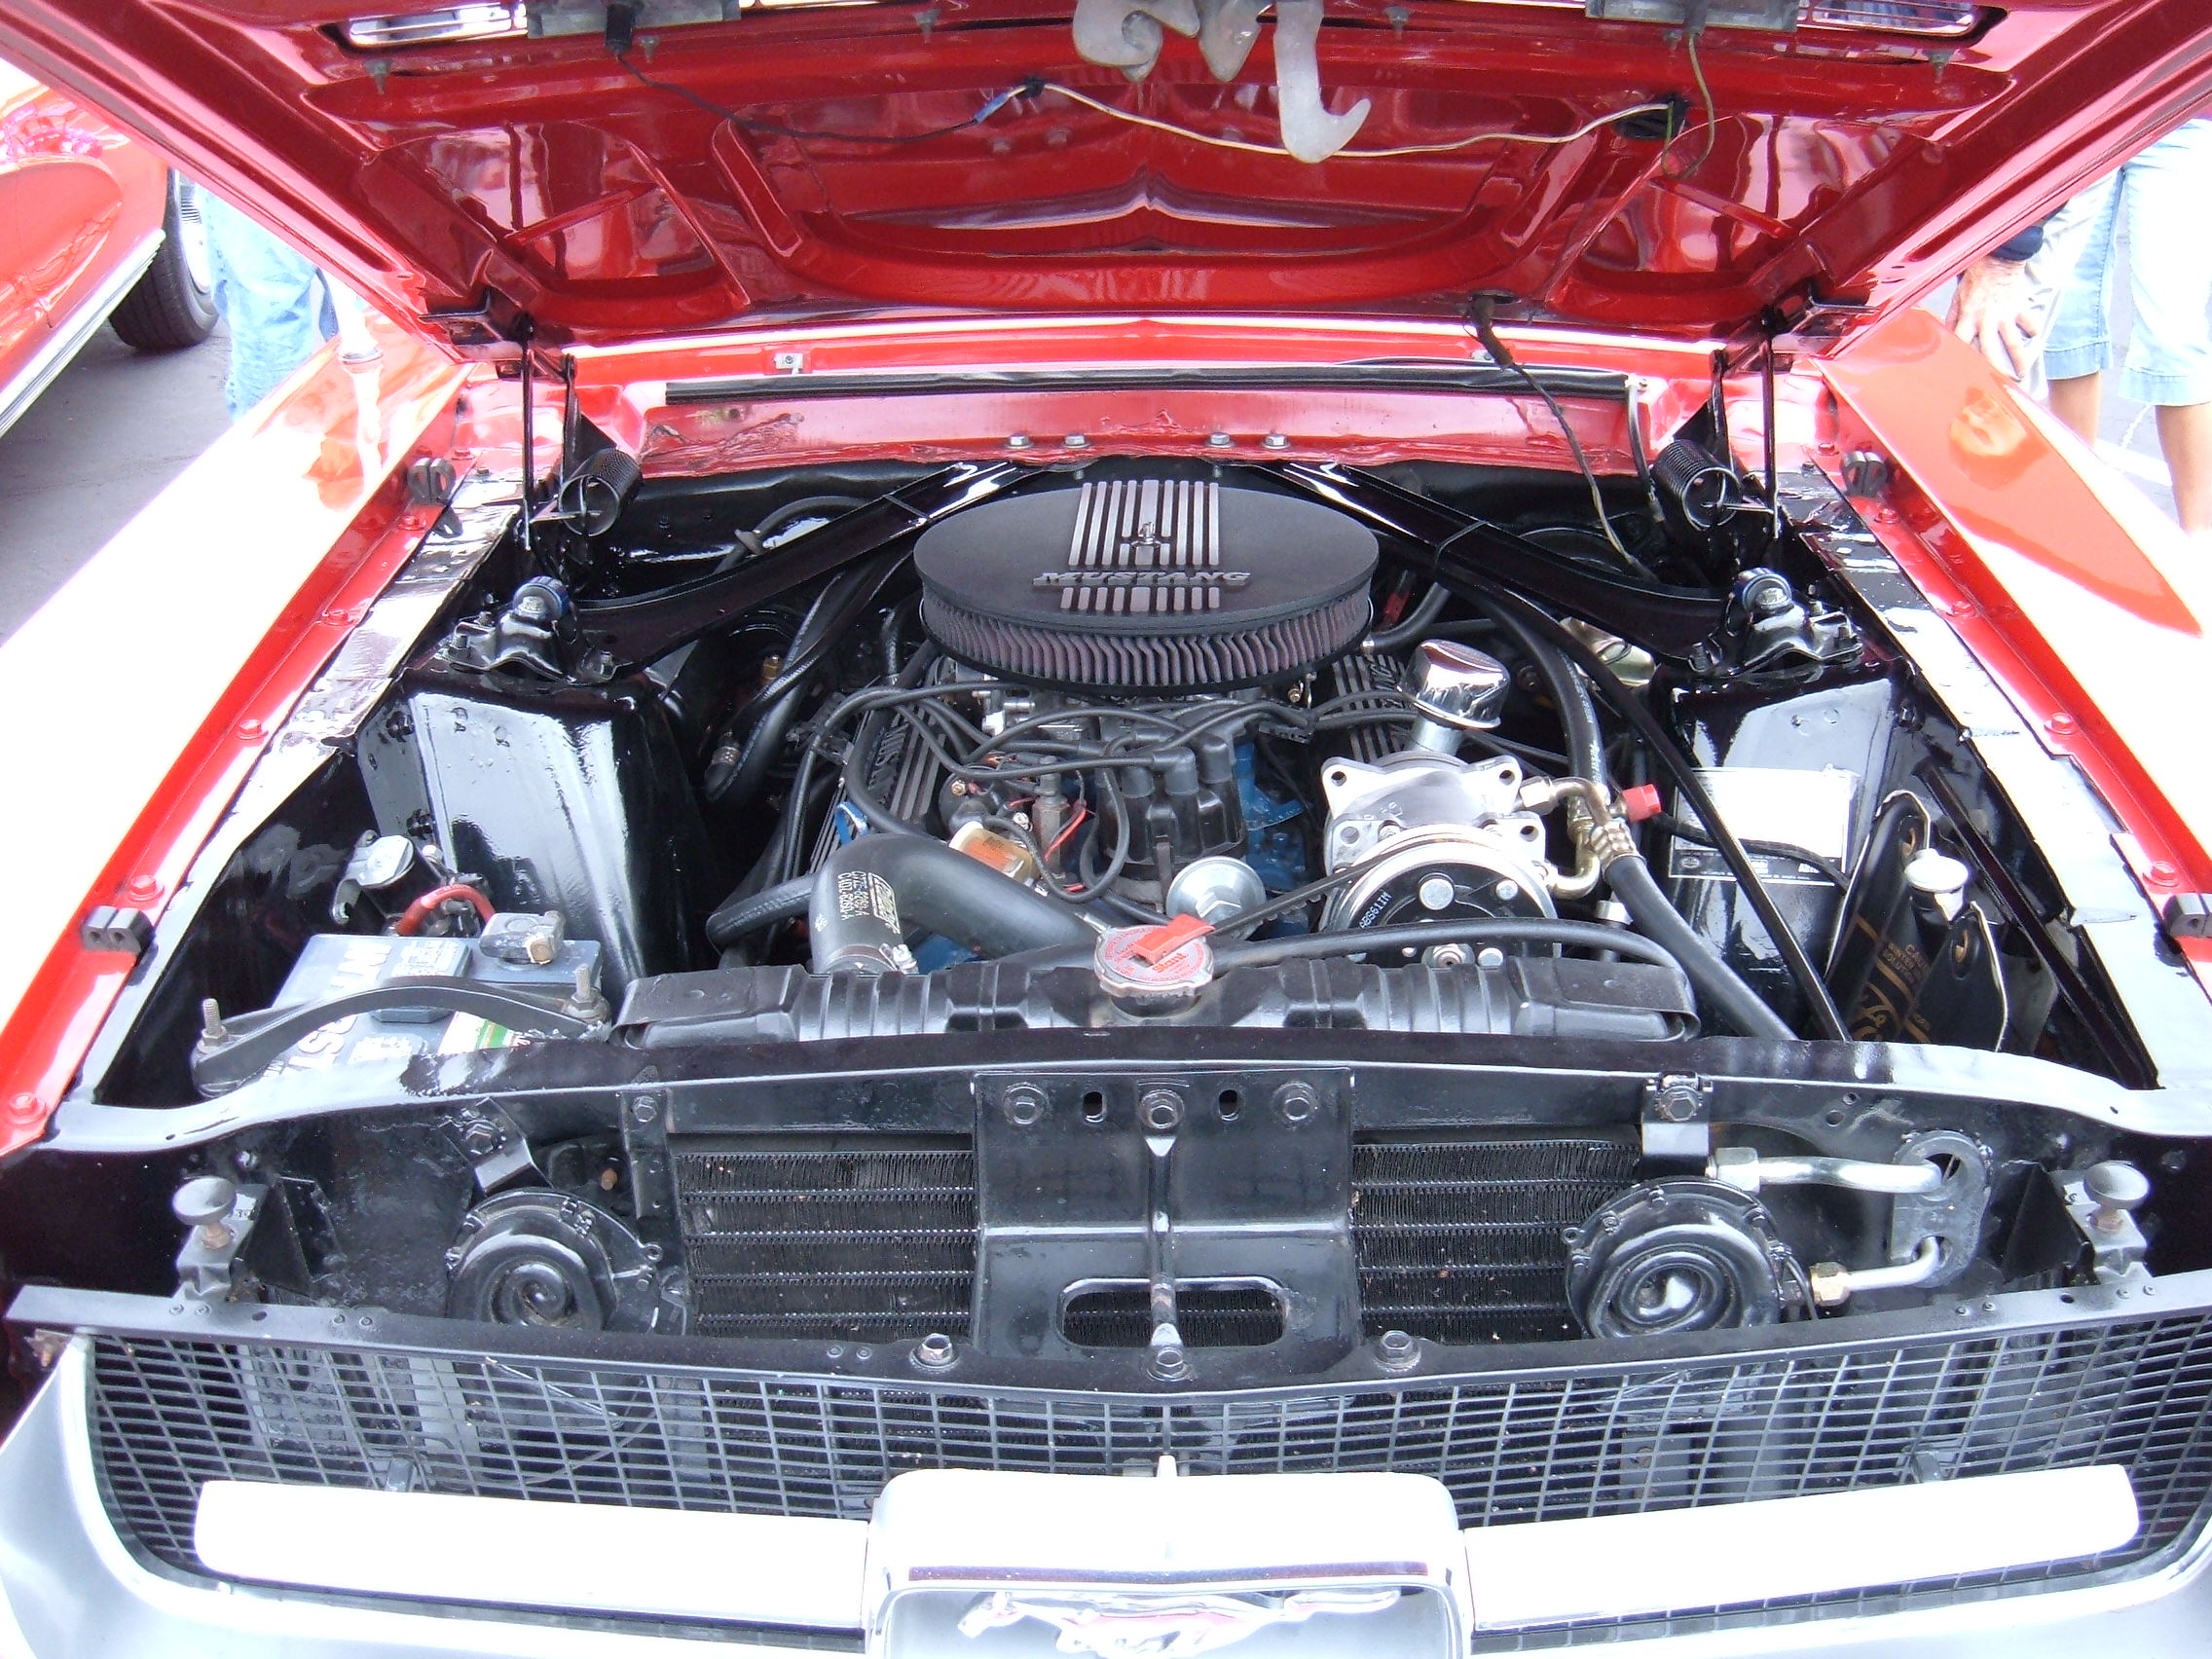 File:1967 red Ford Mustang coupe engine 1.JPG - Wikimedia ...